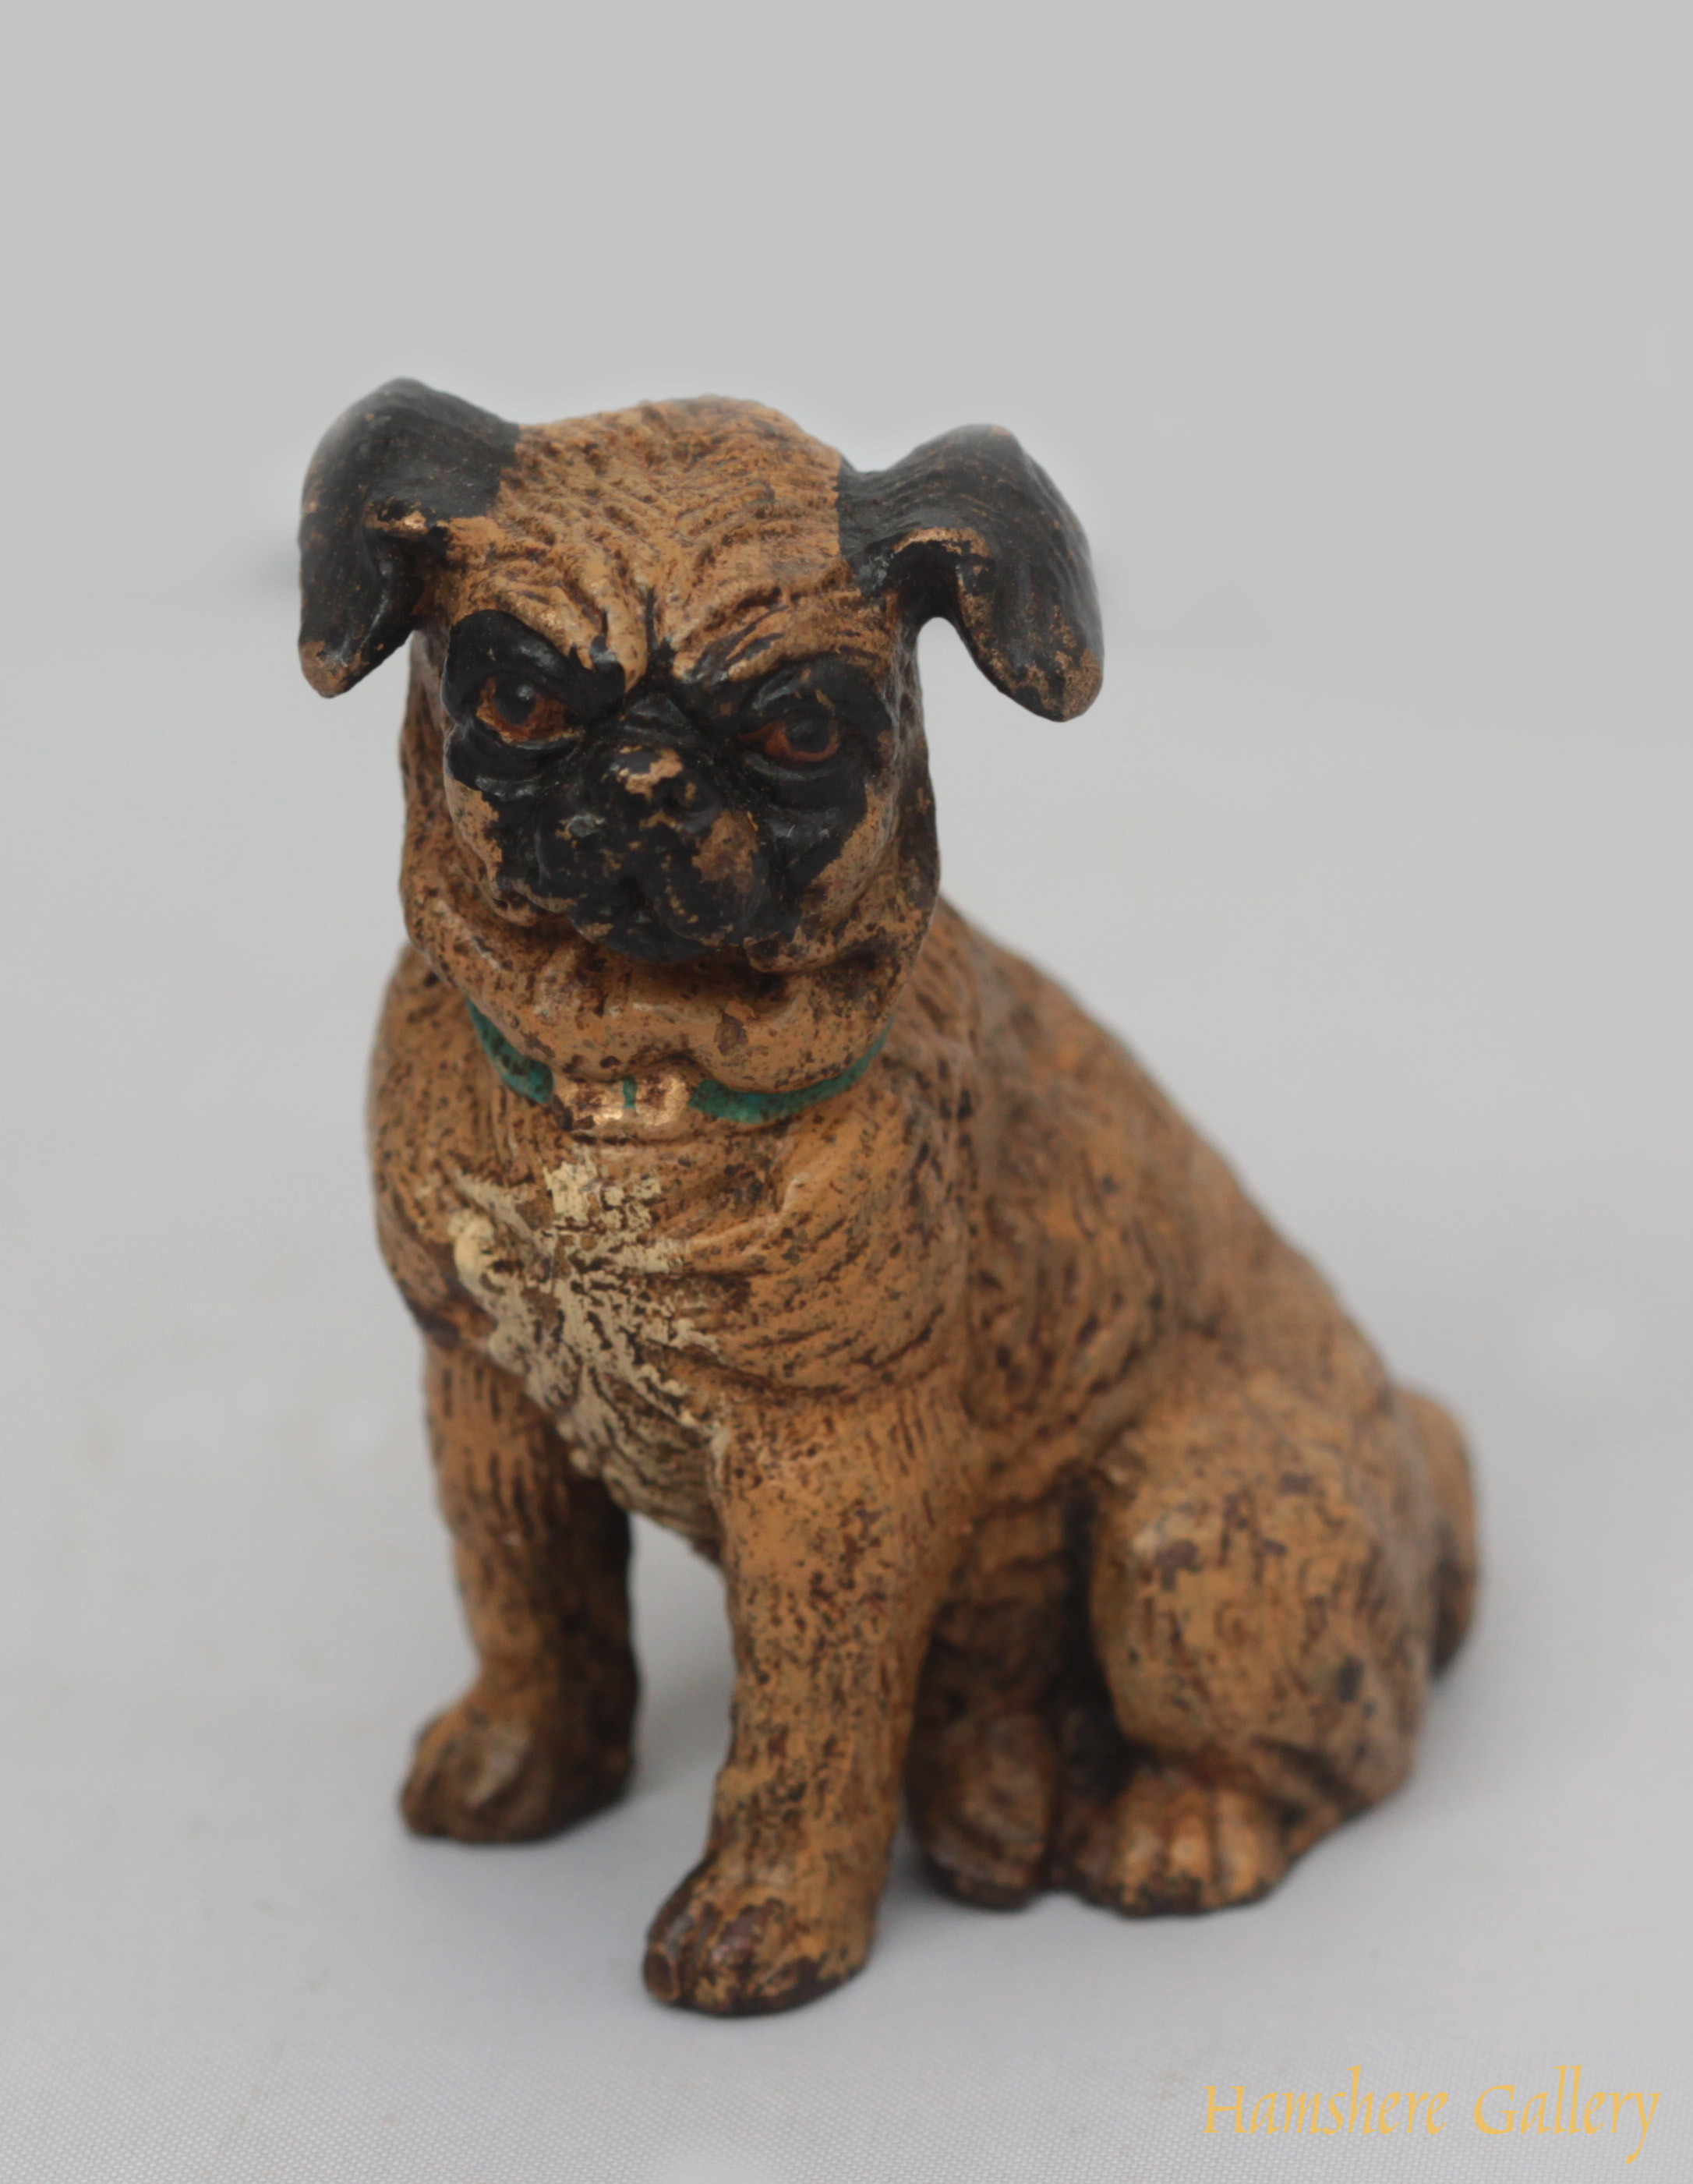 Click to see full size: Pug from the foundry Franz Xaver Bergmann - Pug from the foundry Franz Xaver Bergmann